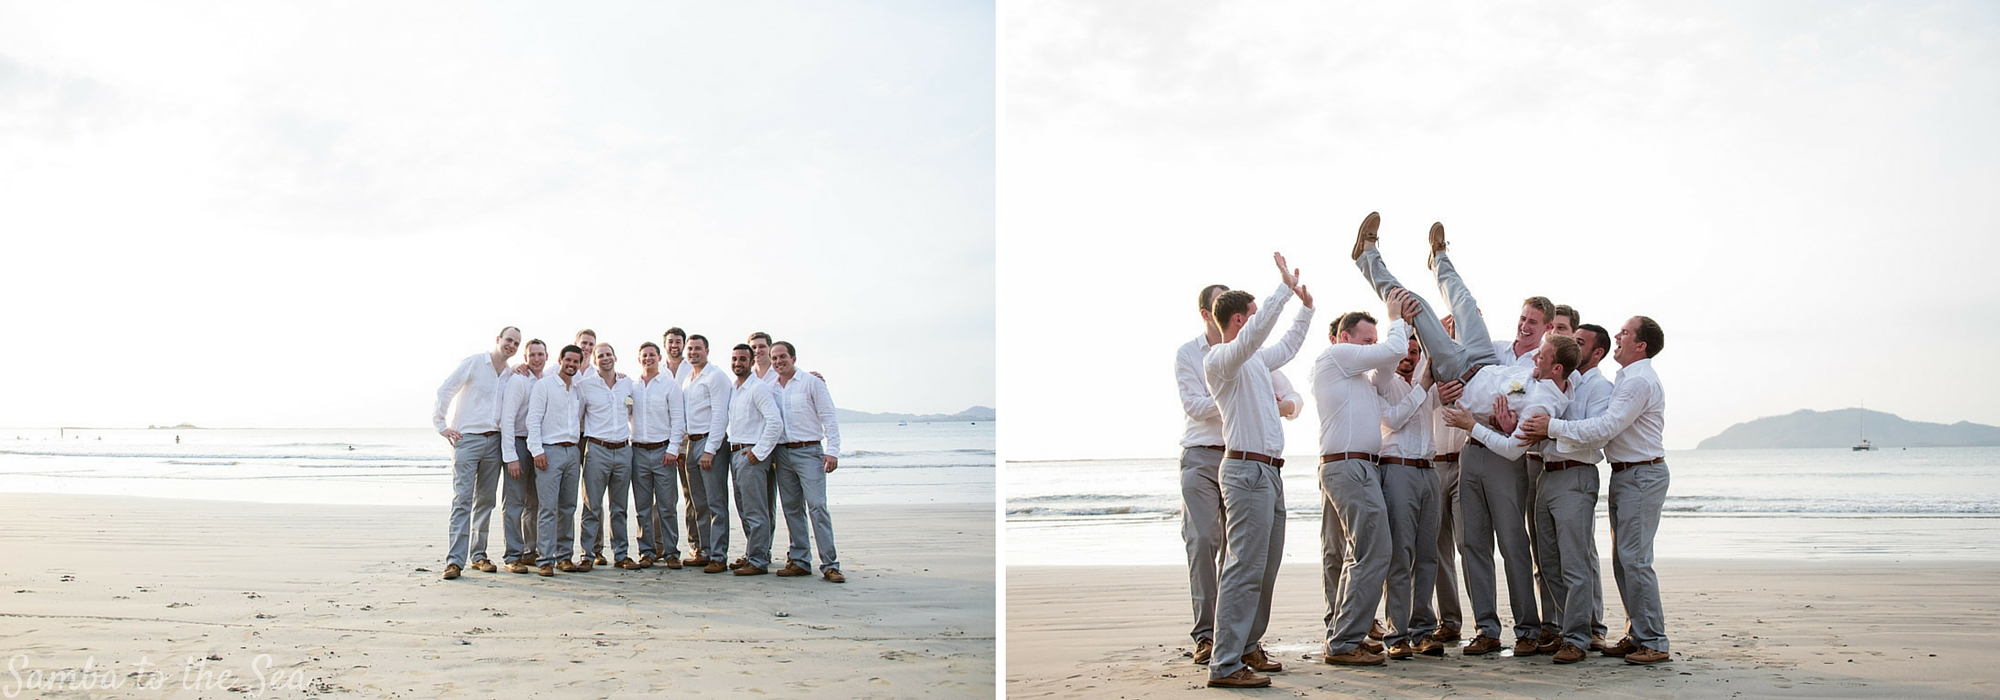 Groomsmen at destination wedding in Tamarindo, Costa Rica. Photographed by Kristen M. Brown, Samba to the Sea Photography.